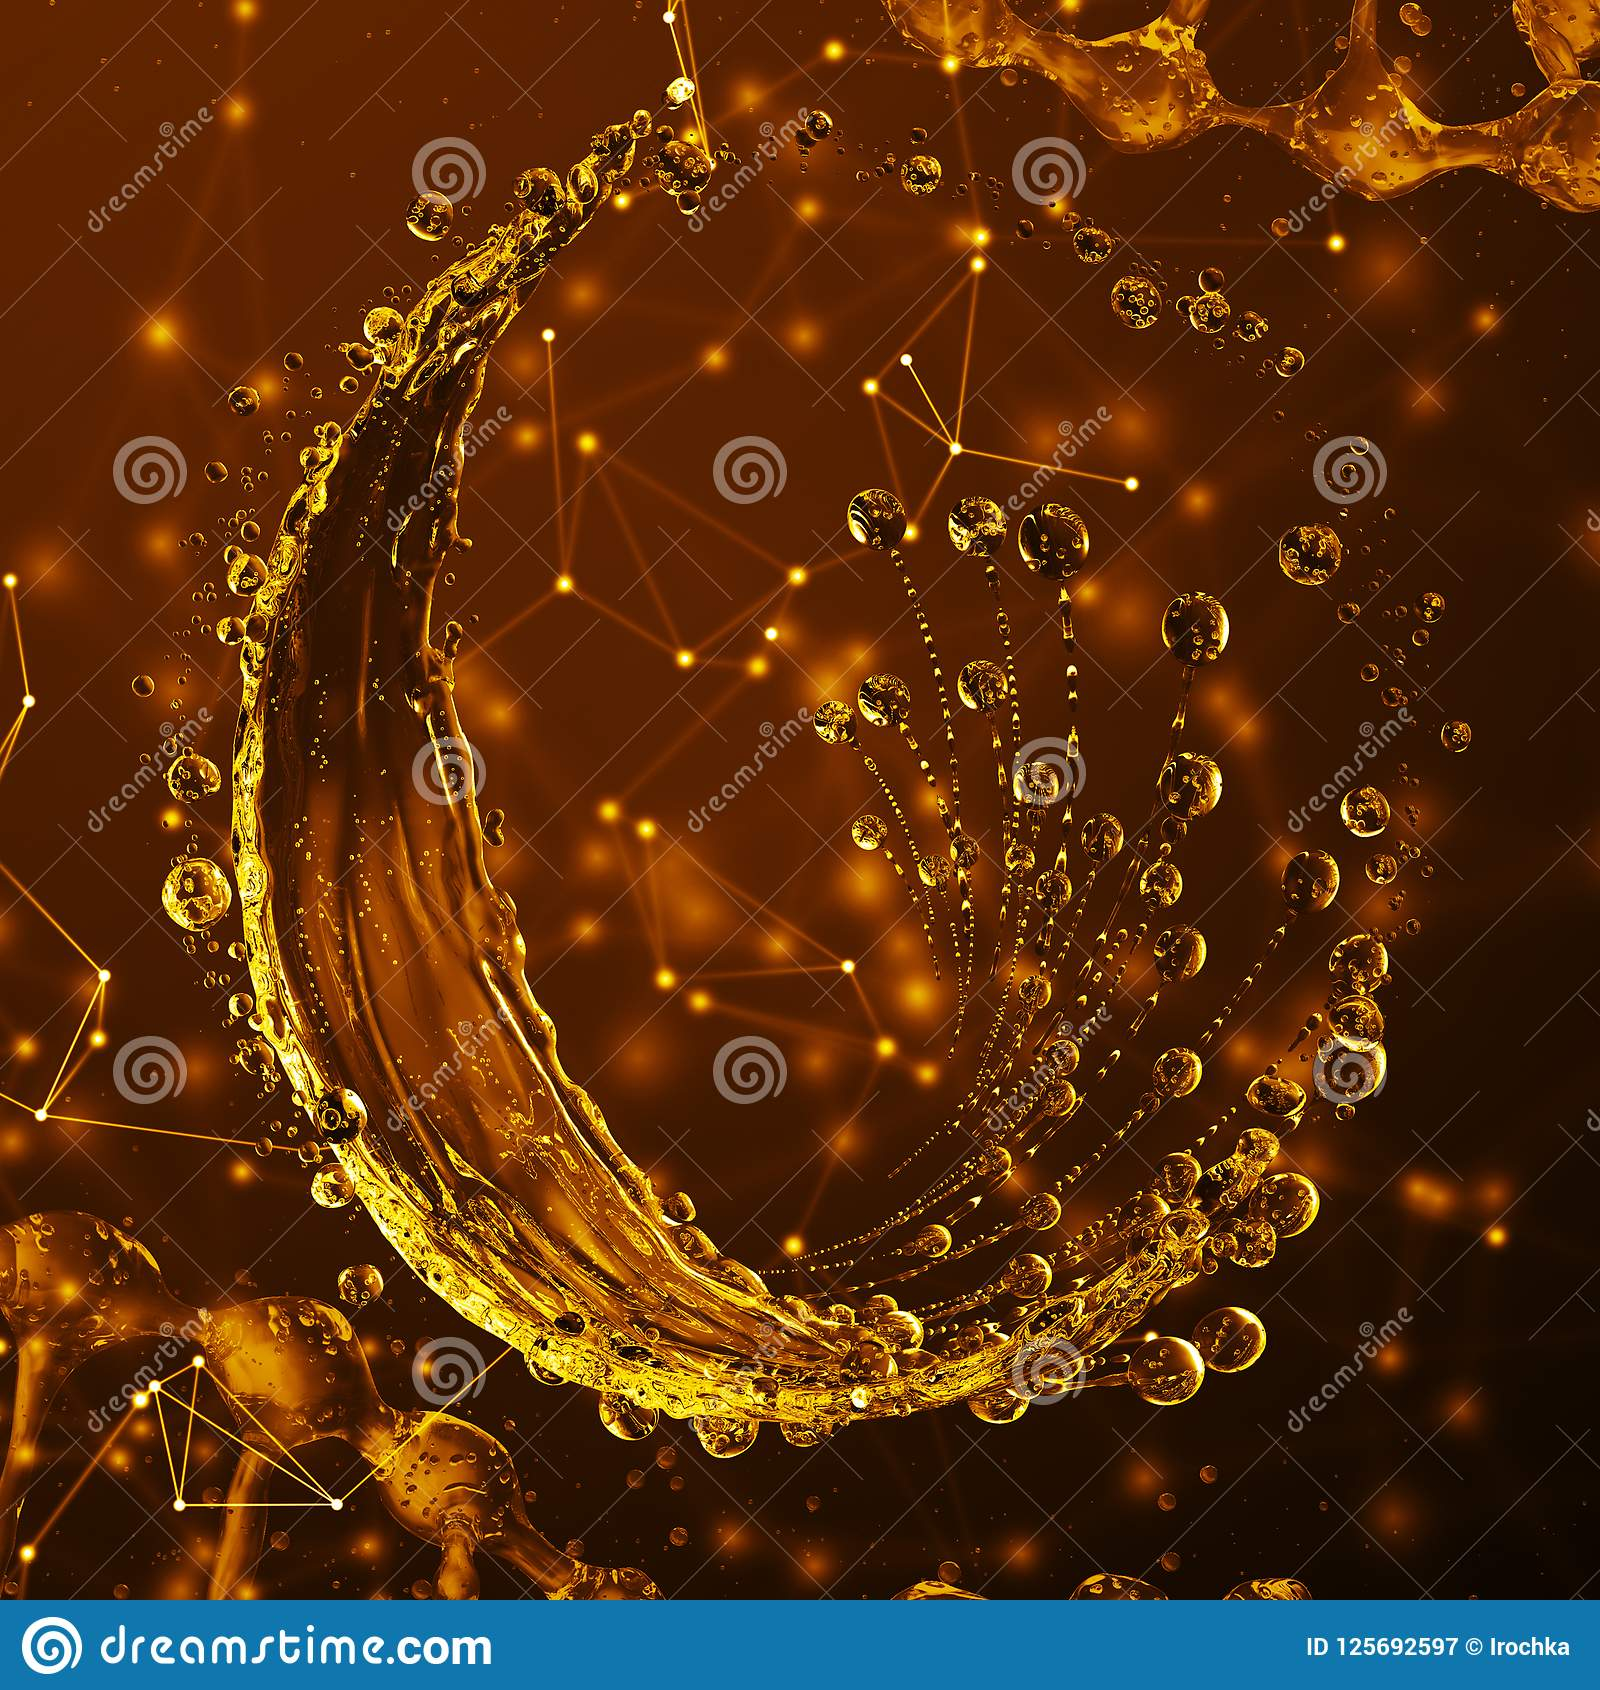 Download 3D Detailed Illustration Of A Drop Of Water Gold Color. Stock Illustration - Illustration of abstract, dynamic: 125692597